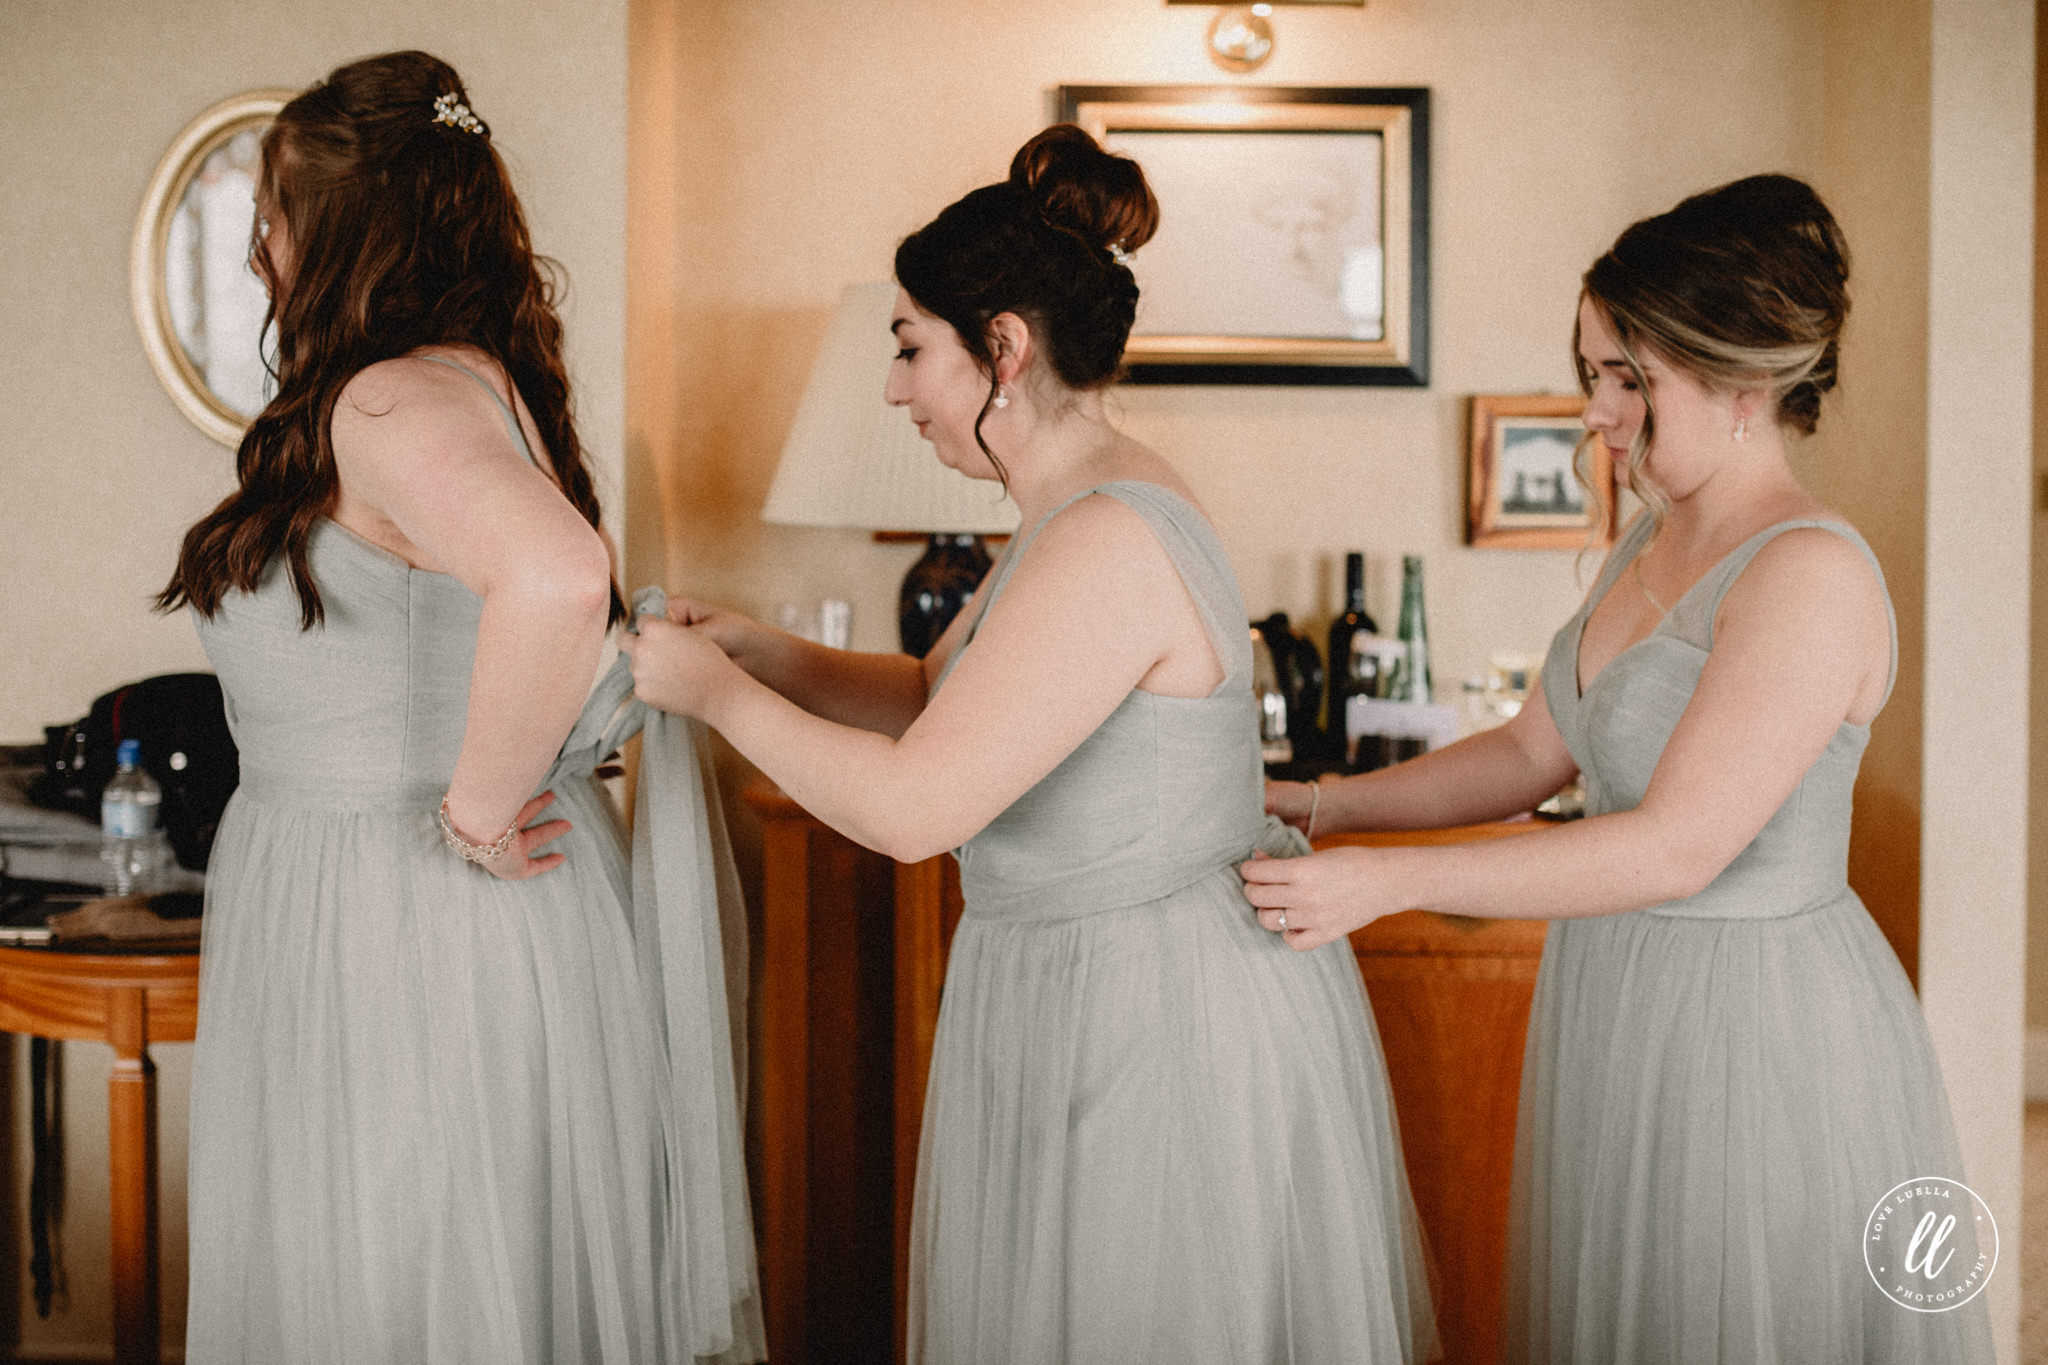 Bridesmaids Getting Ready In Sync